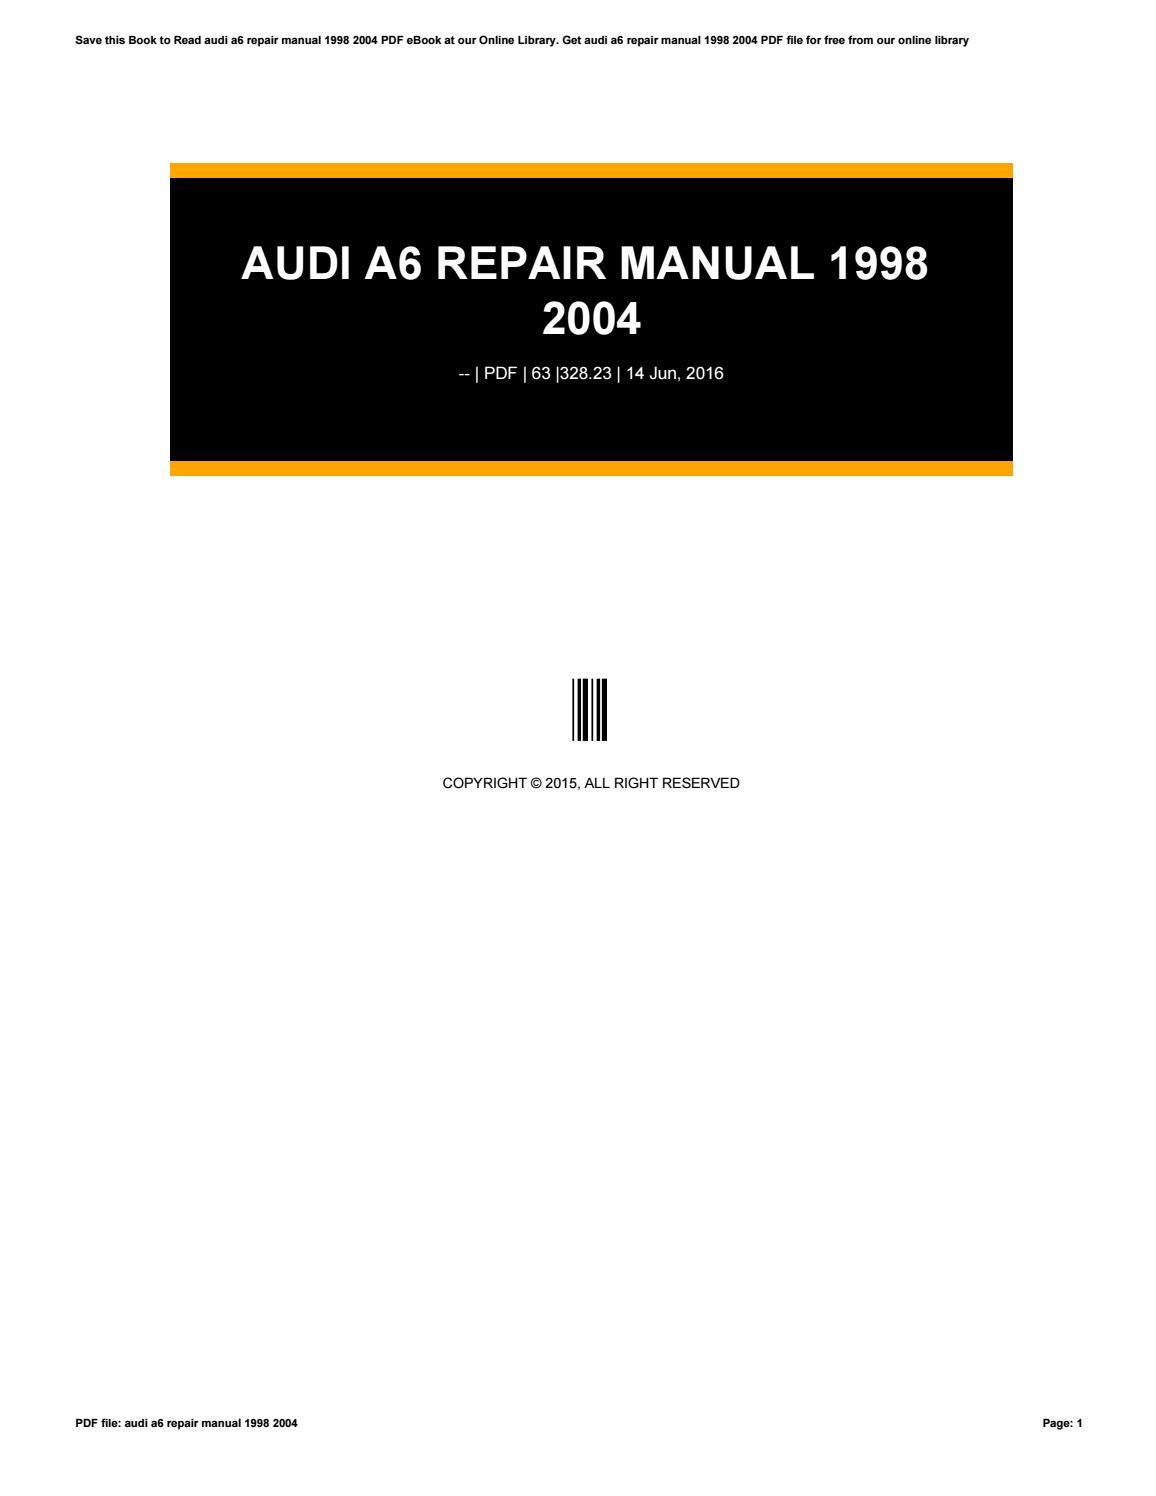 Audi a6 repair manual 1998 2004 by preseven14 issuu fandeluxe Choice Image